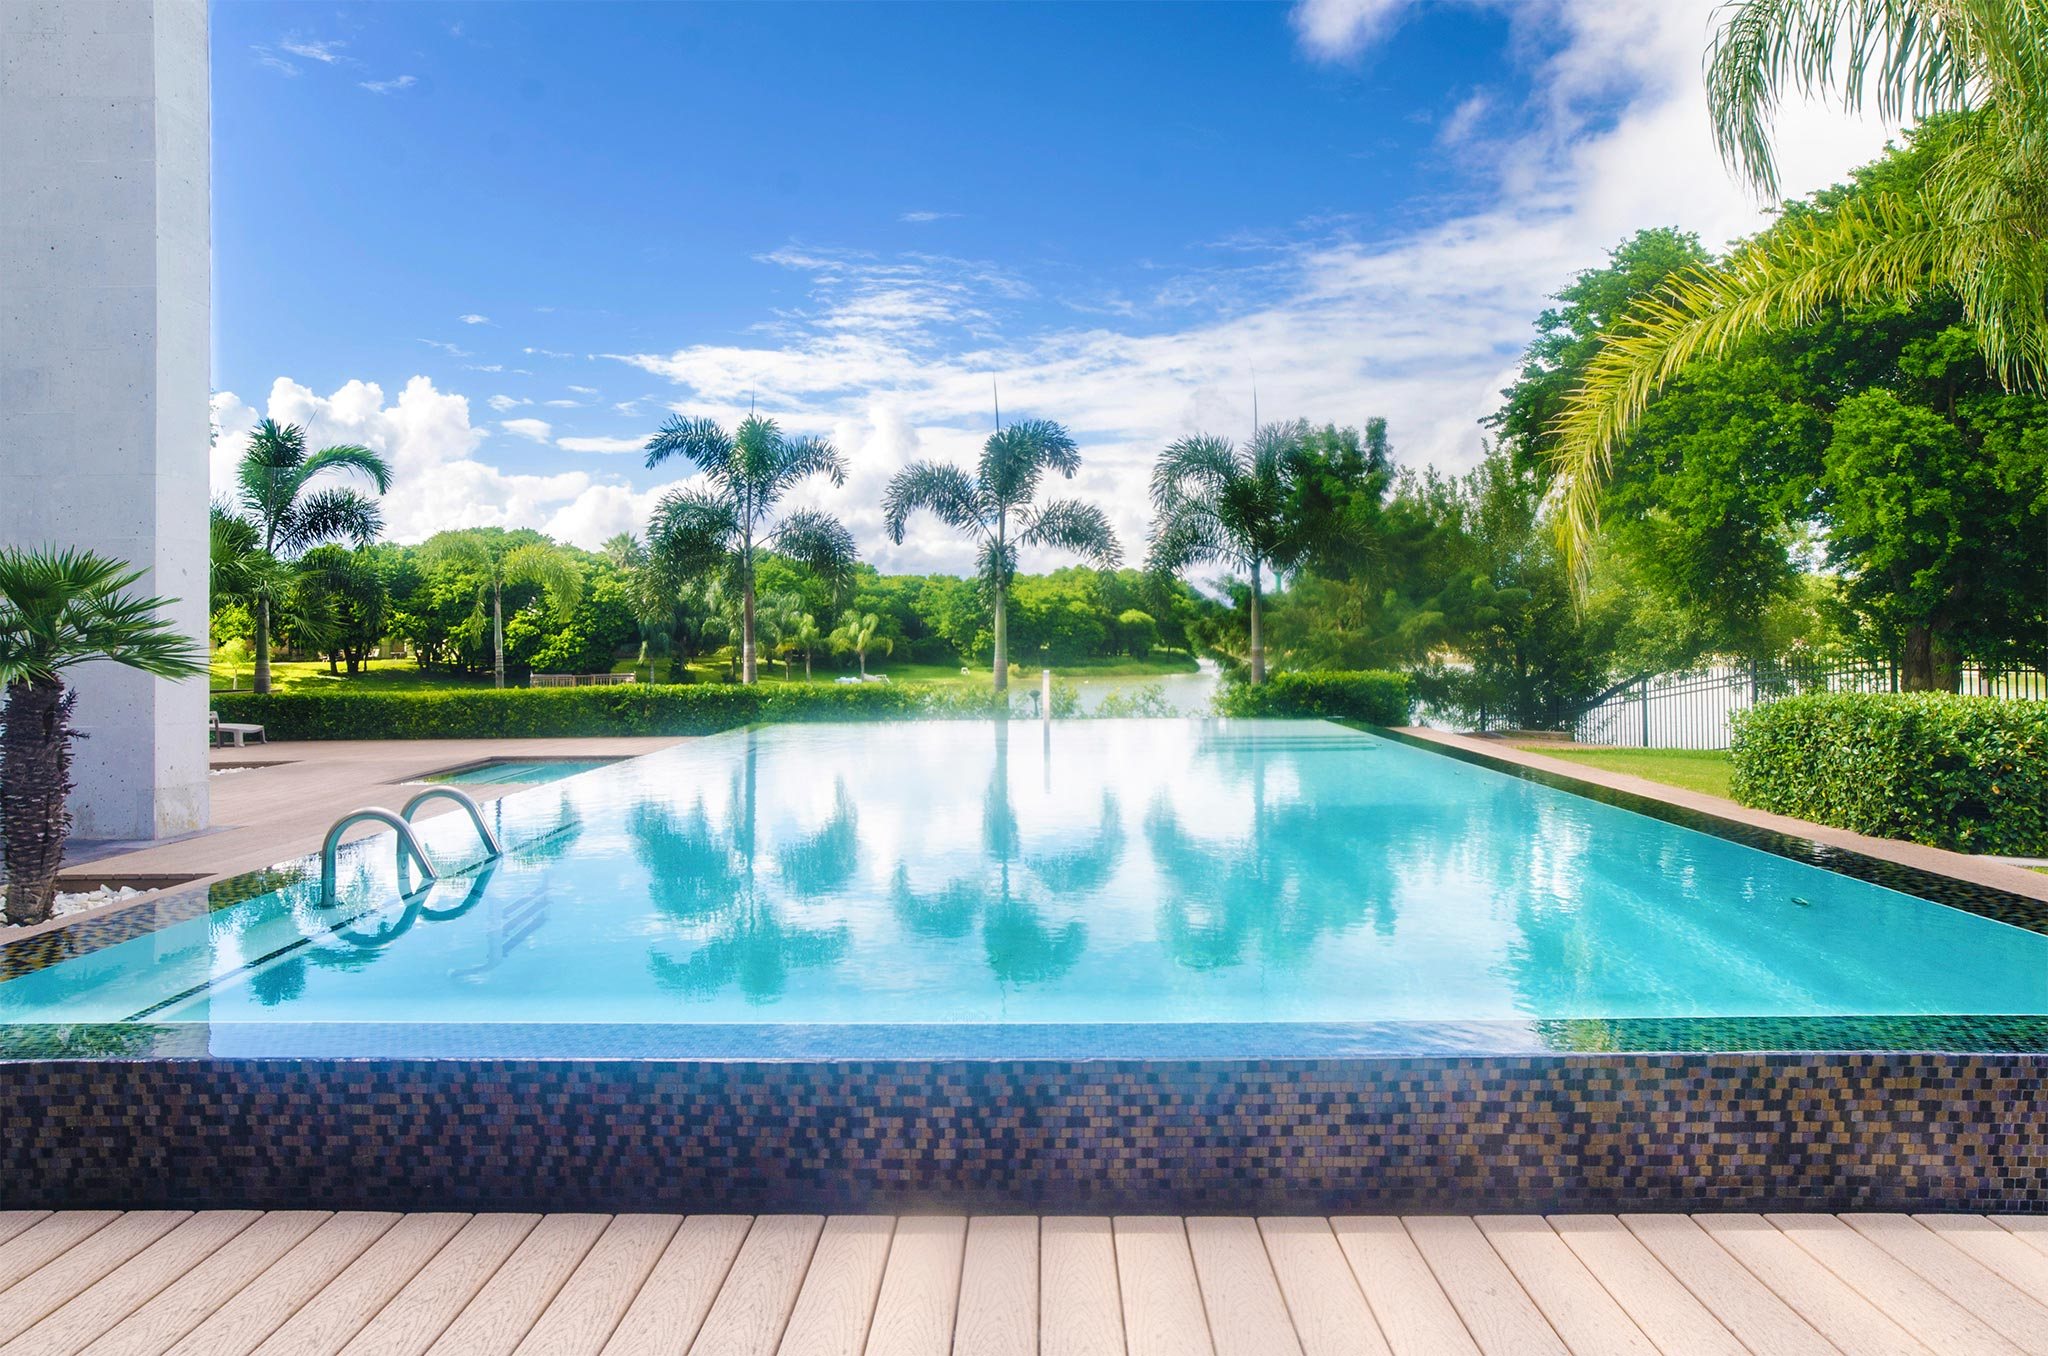 Burgos Pool And Spa Supply Home Rio Grande Valley Swimming Pools Brownsville Swimming Pools